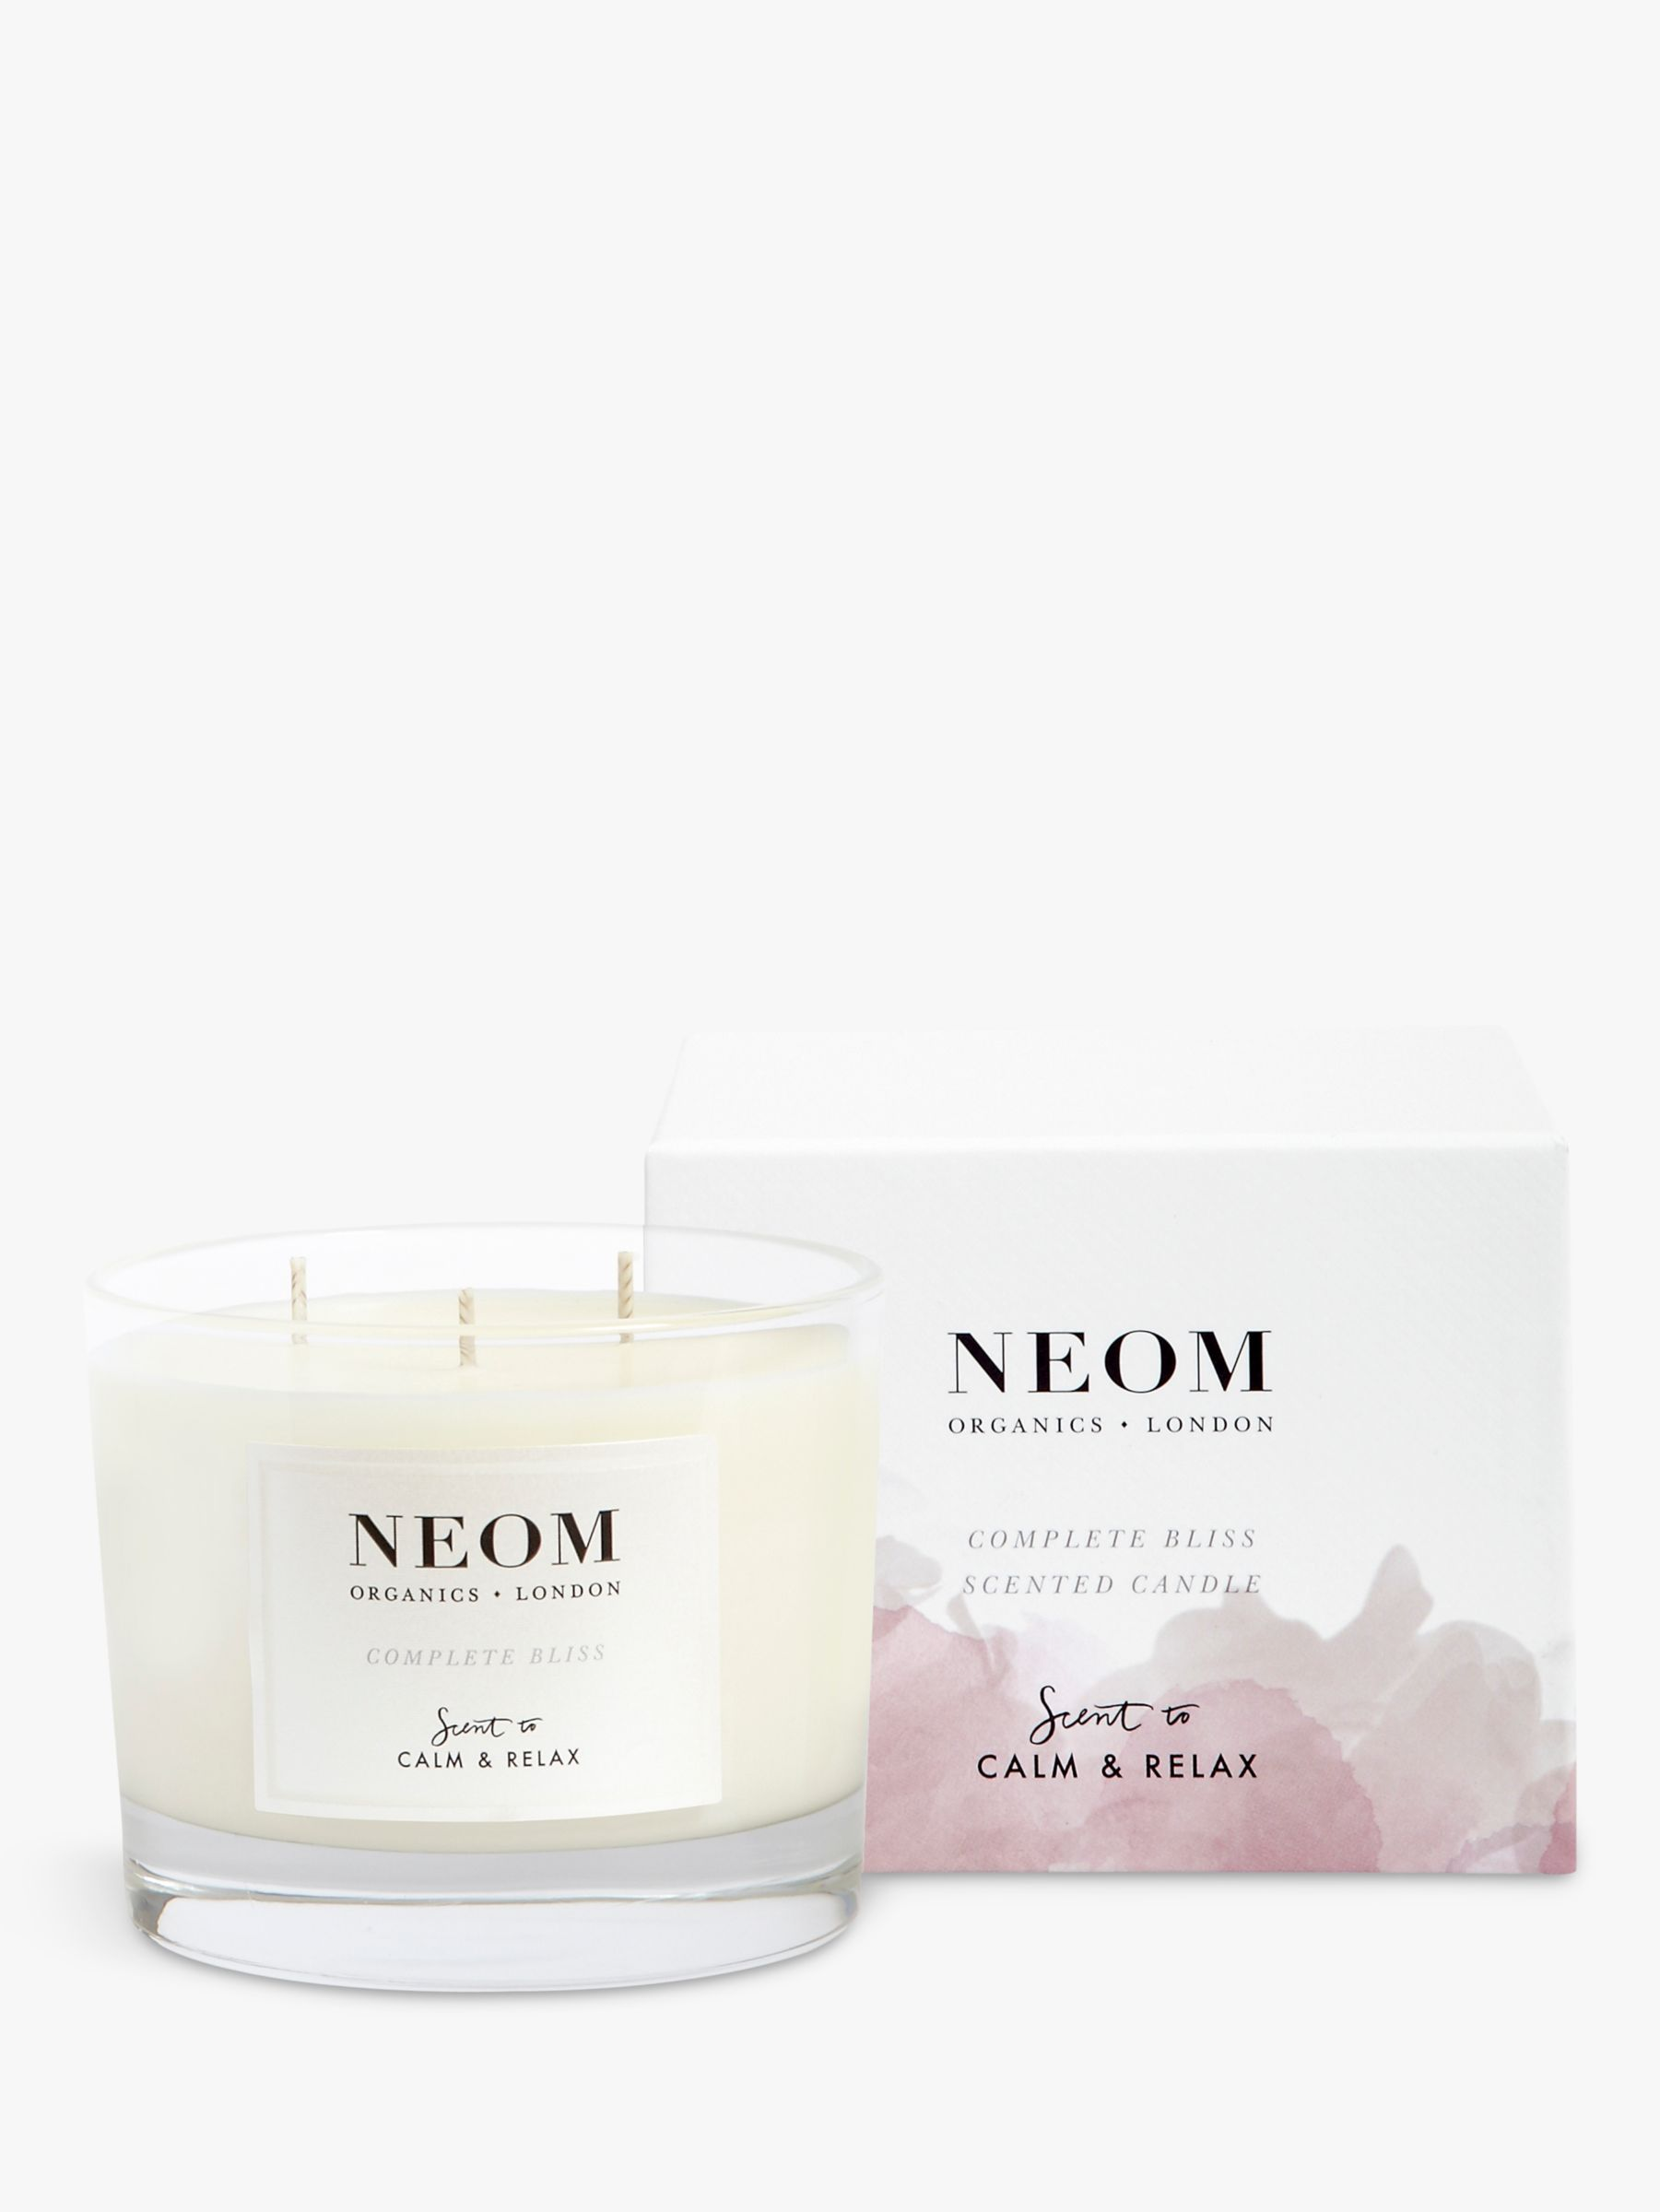 Neom Neom Complete Bliss 3 Wick Candle, 420g